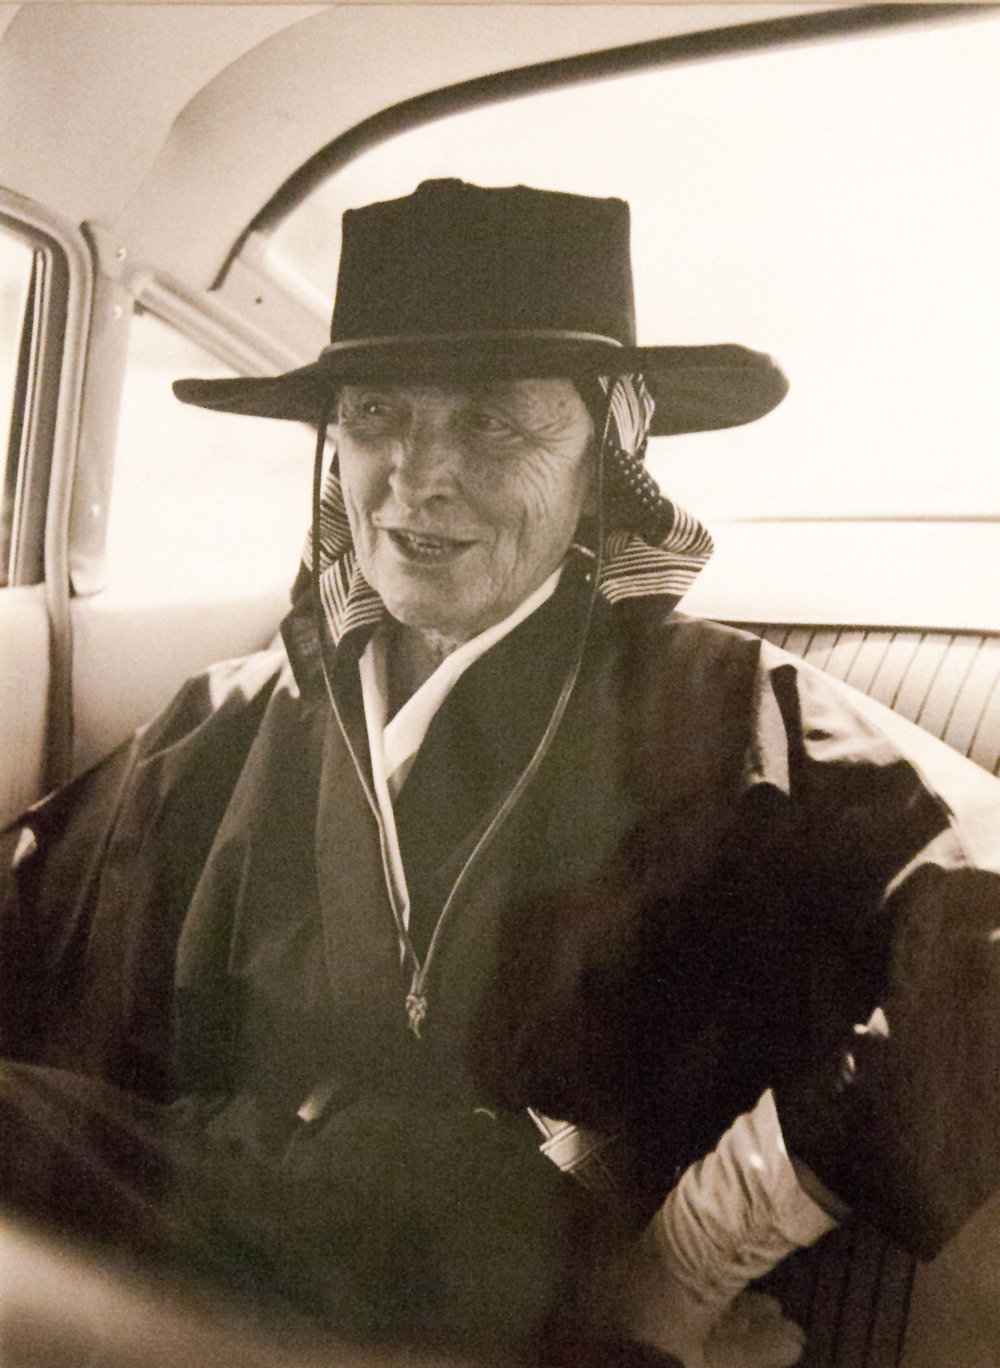 New Mexico phase -Tony Vaccaro,  Georgia in the Car with Hat - 1 , 1960, gelatin silver print